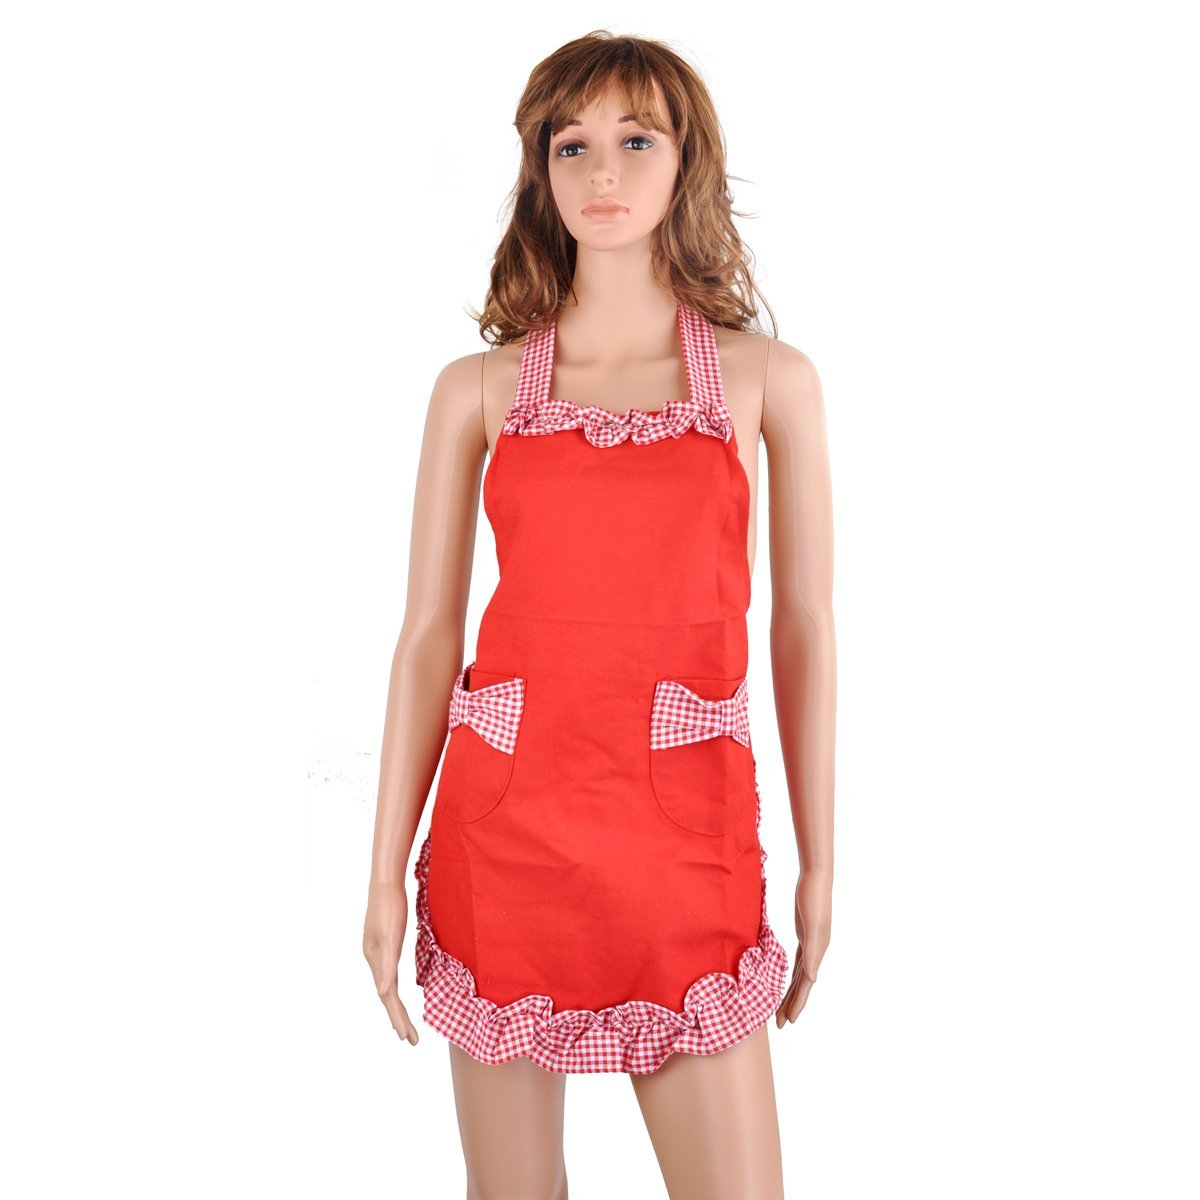 PIXNOR Kitchen Cooking Baking Apron Women Apron with Pockets (Red)